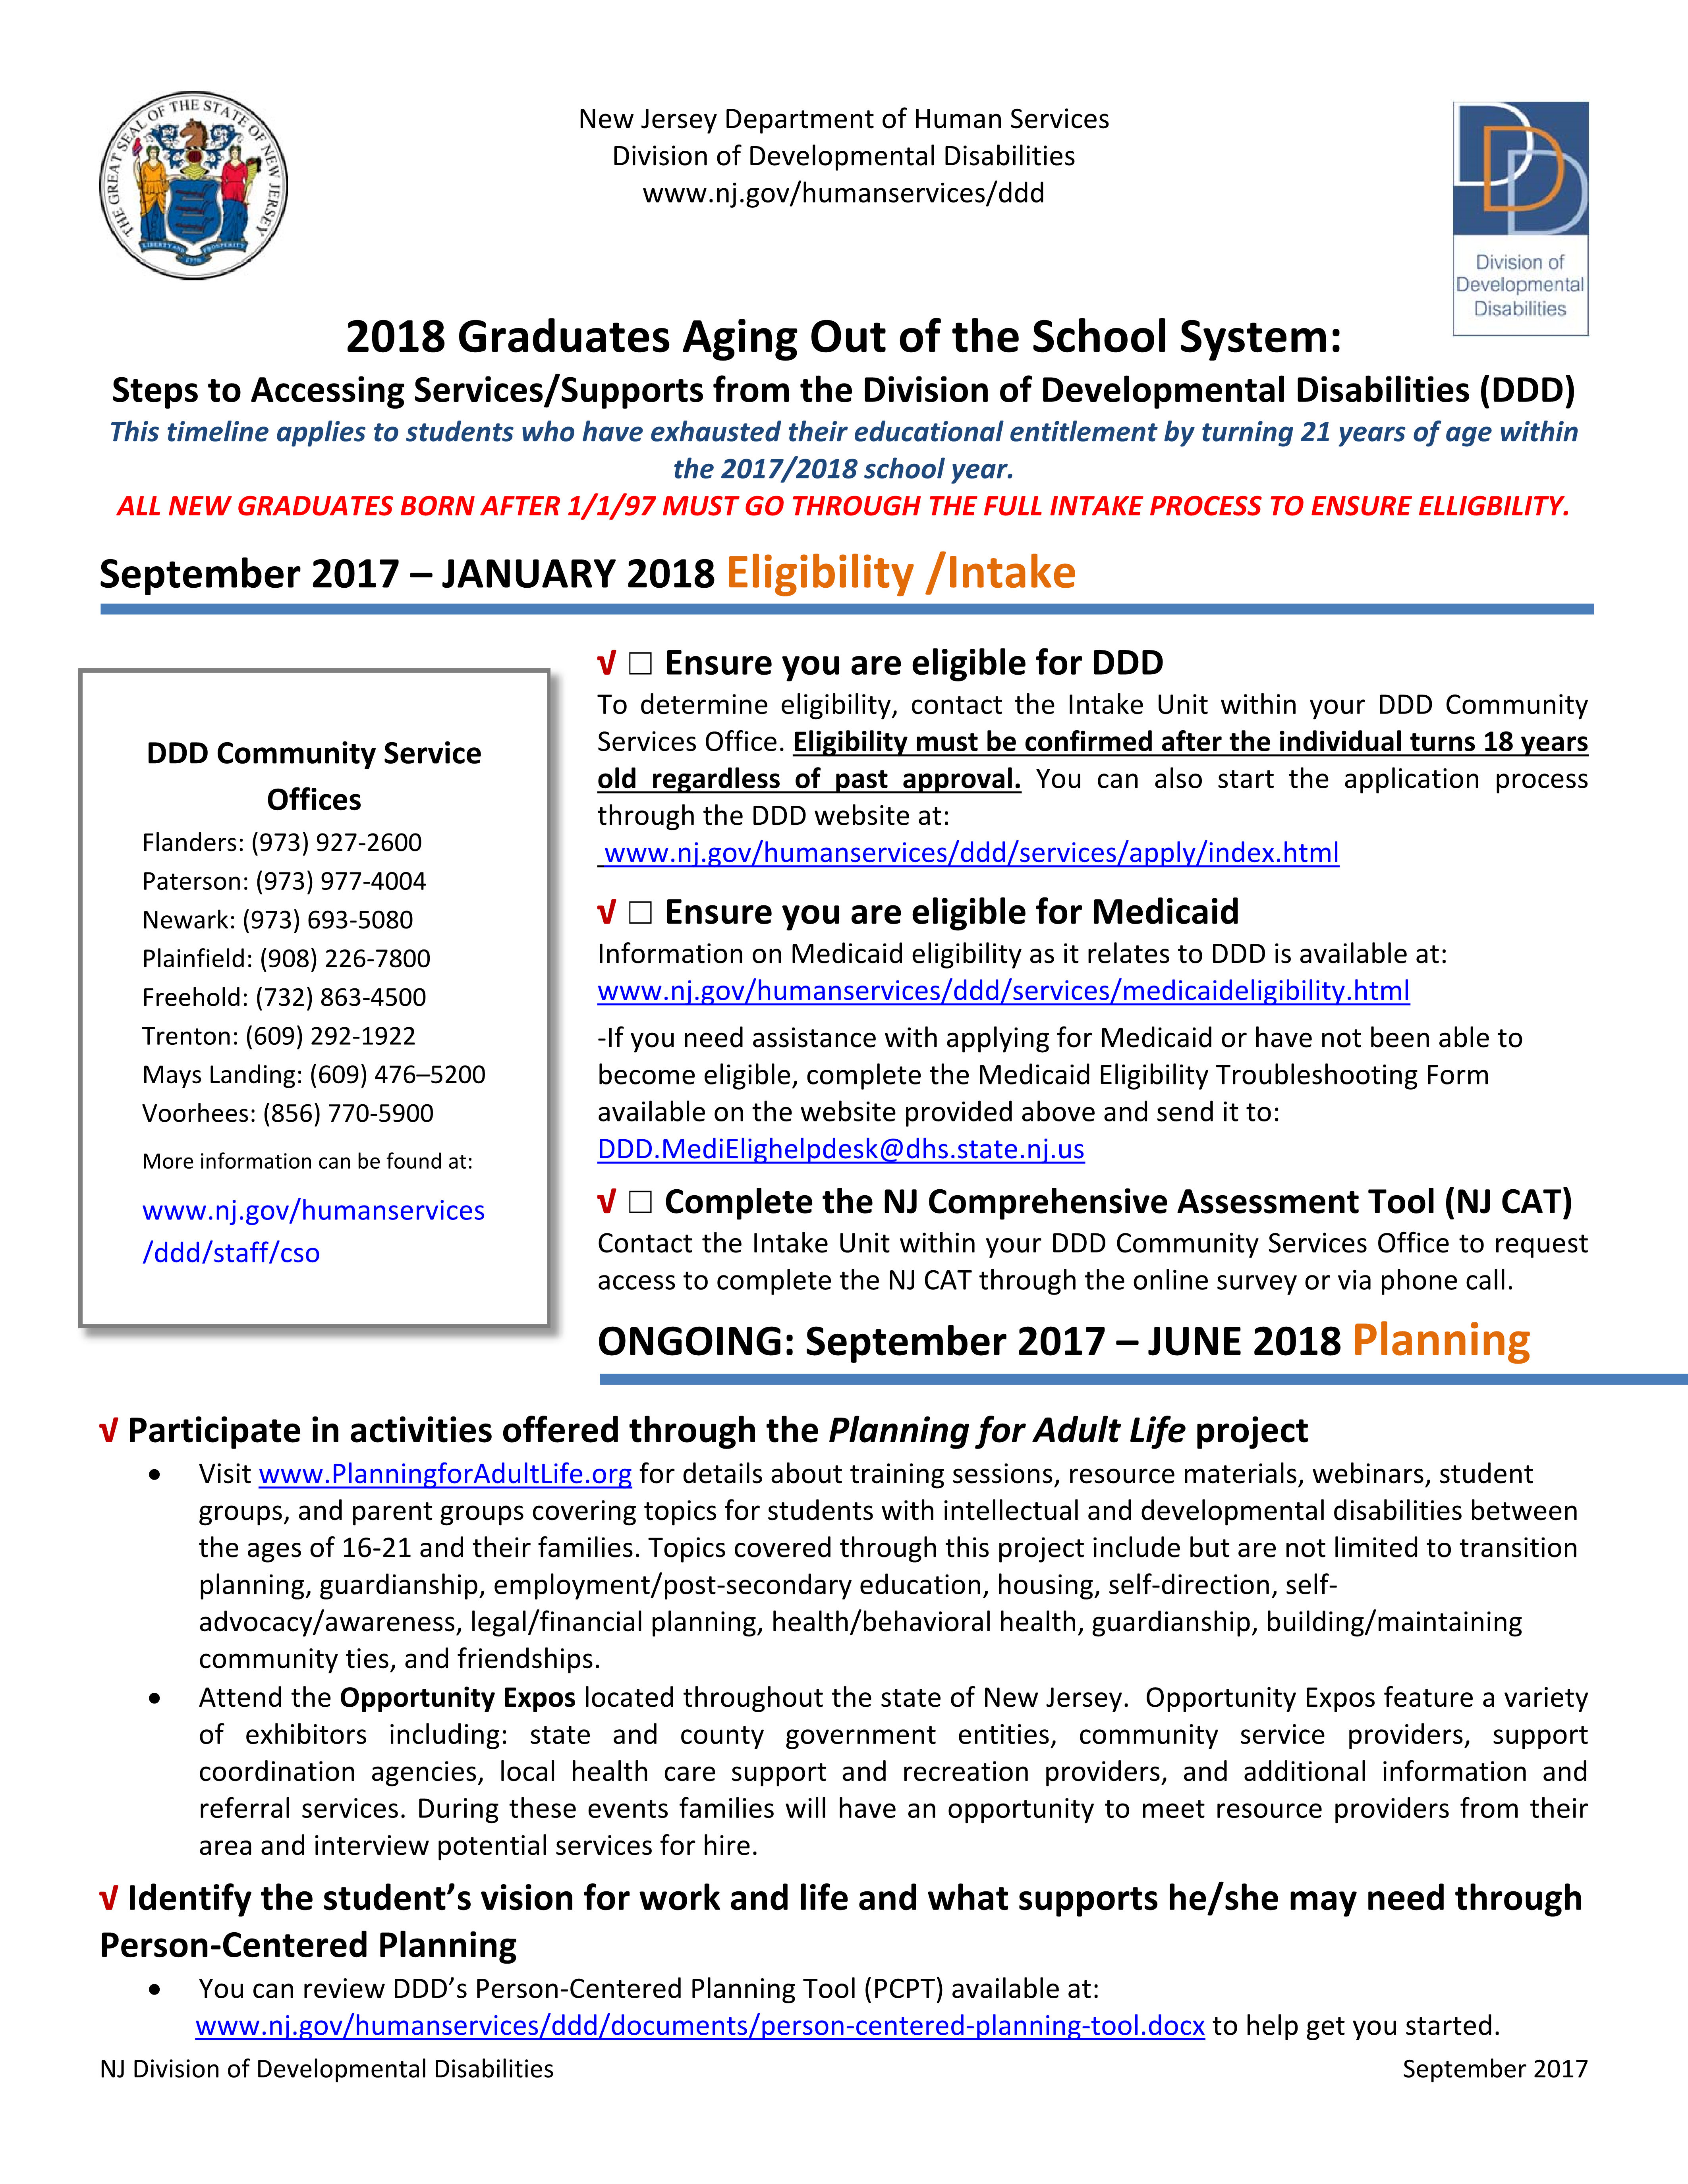 2018 Timeline: Graduates Aging Out of the School System